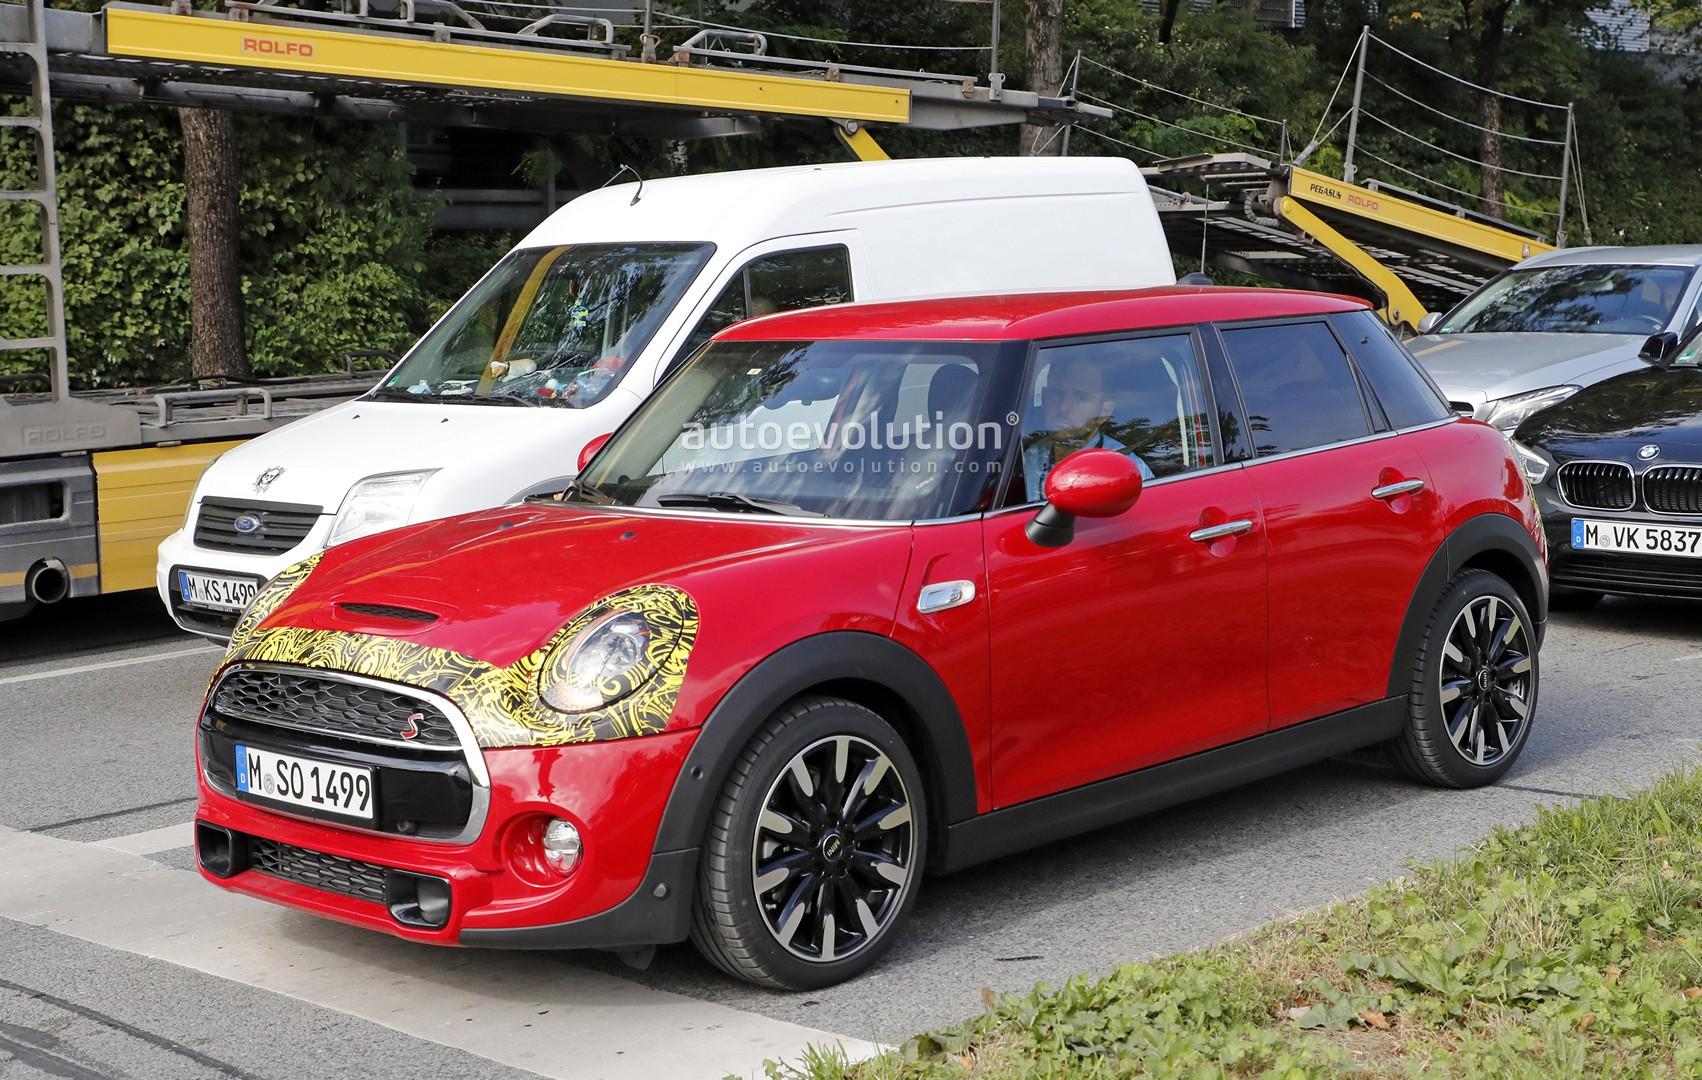 2018 mini cooper s 5 door facelift spied what 39 s so different autoevolution. Black Bedroom Furniture Sets. Home Design Ideas